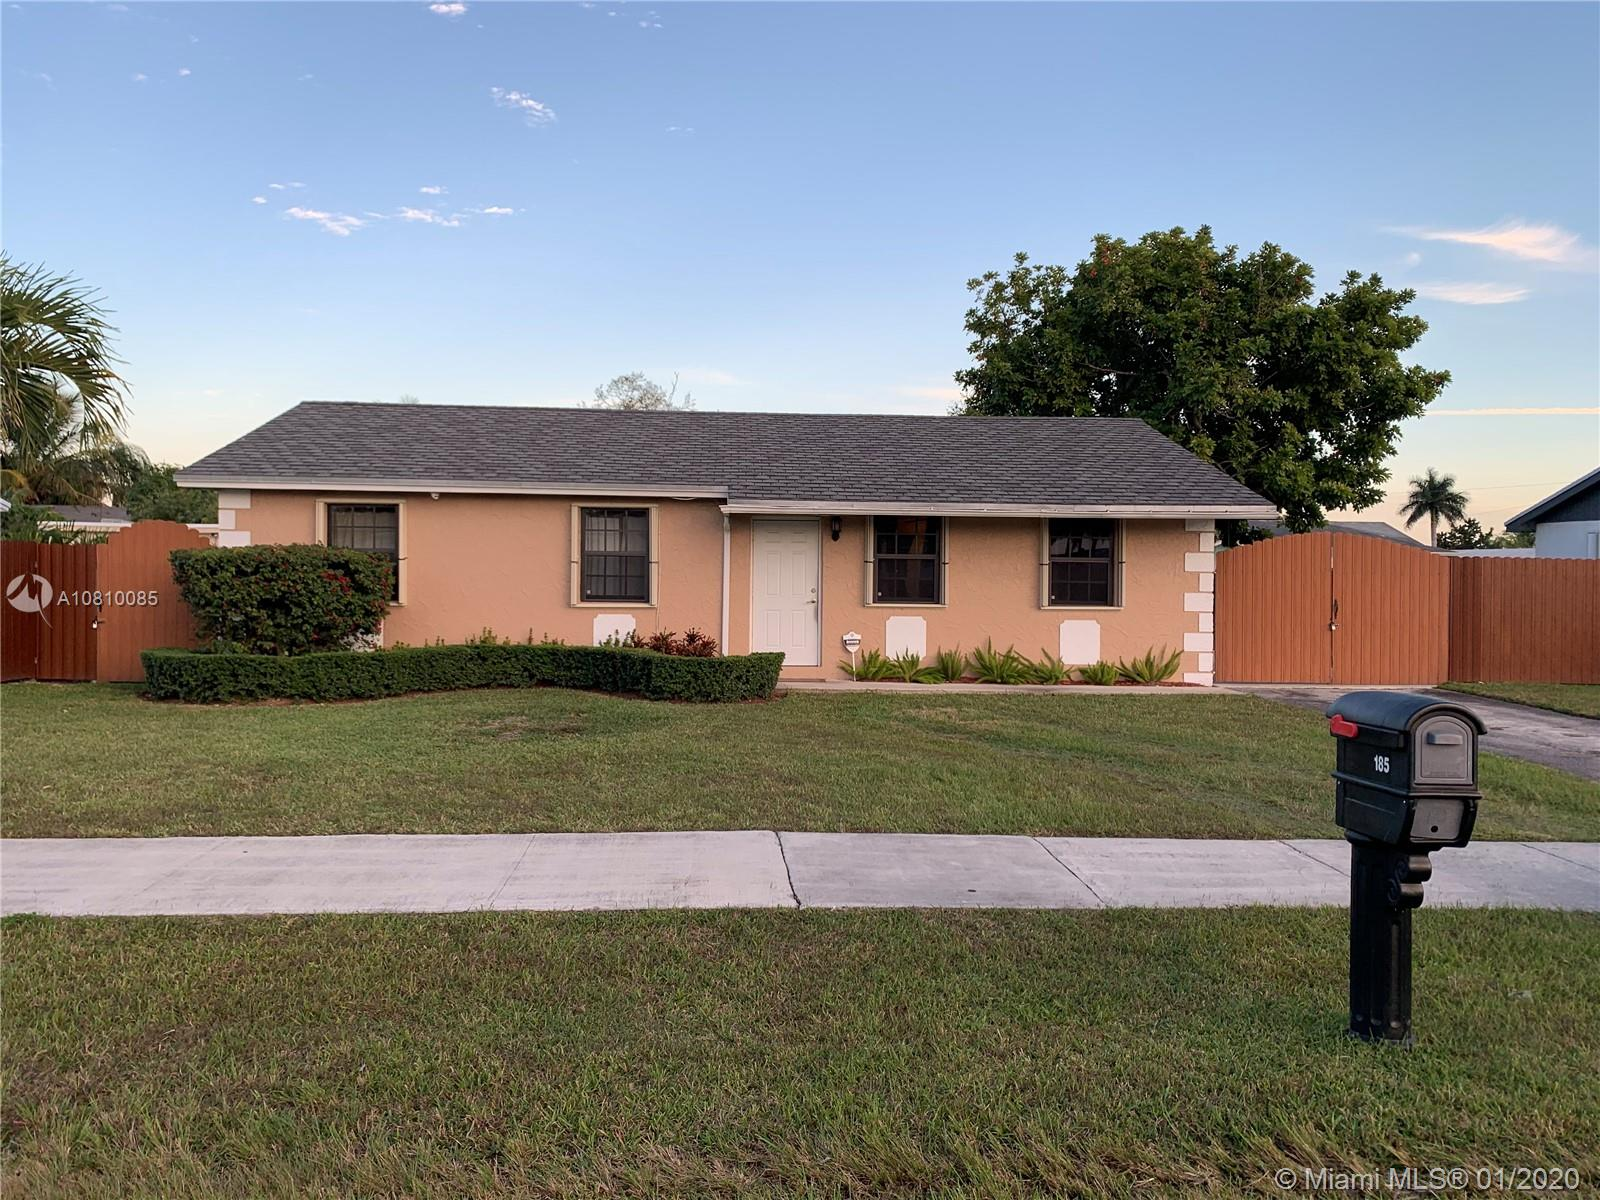 185 SW 17th Ave, Homestead, FL 33030 - Homestead, FL real estate listing